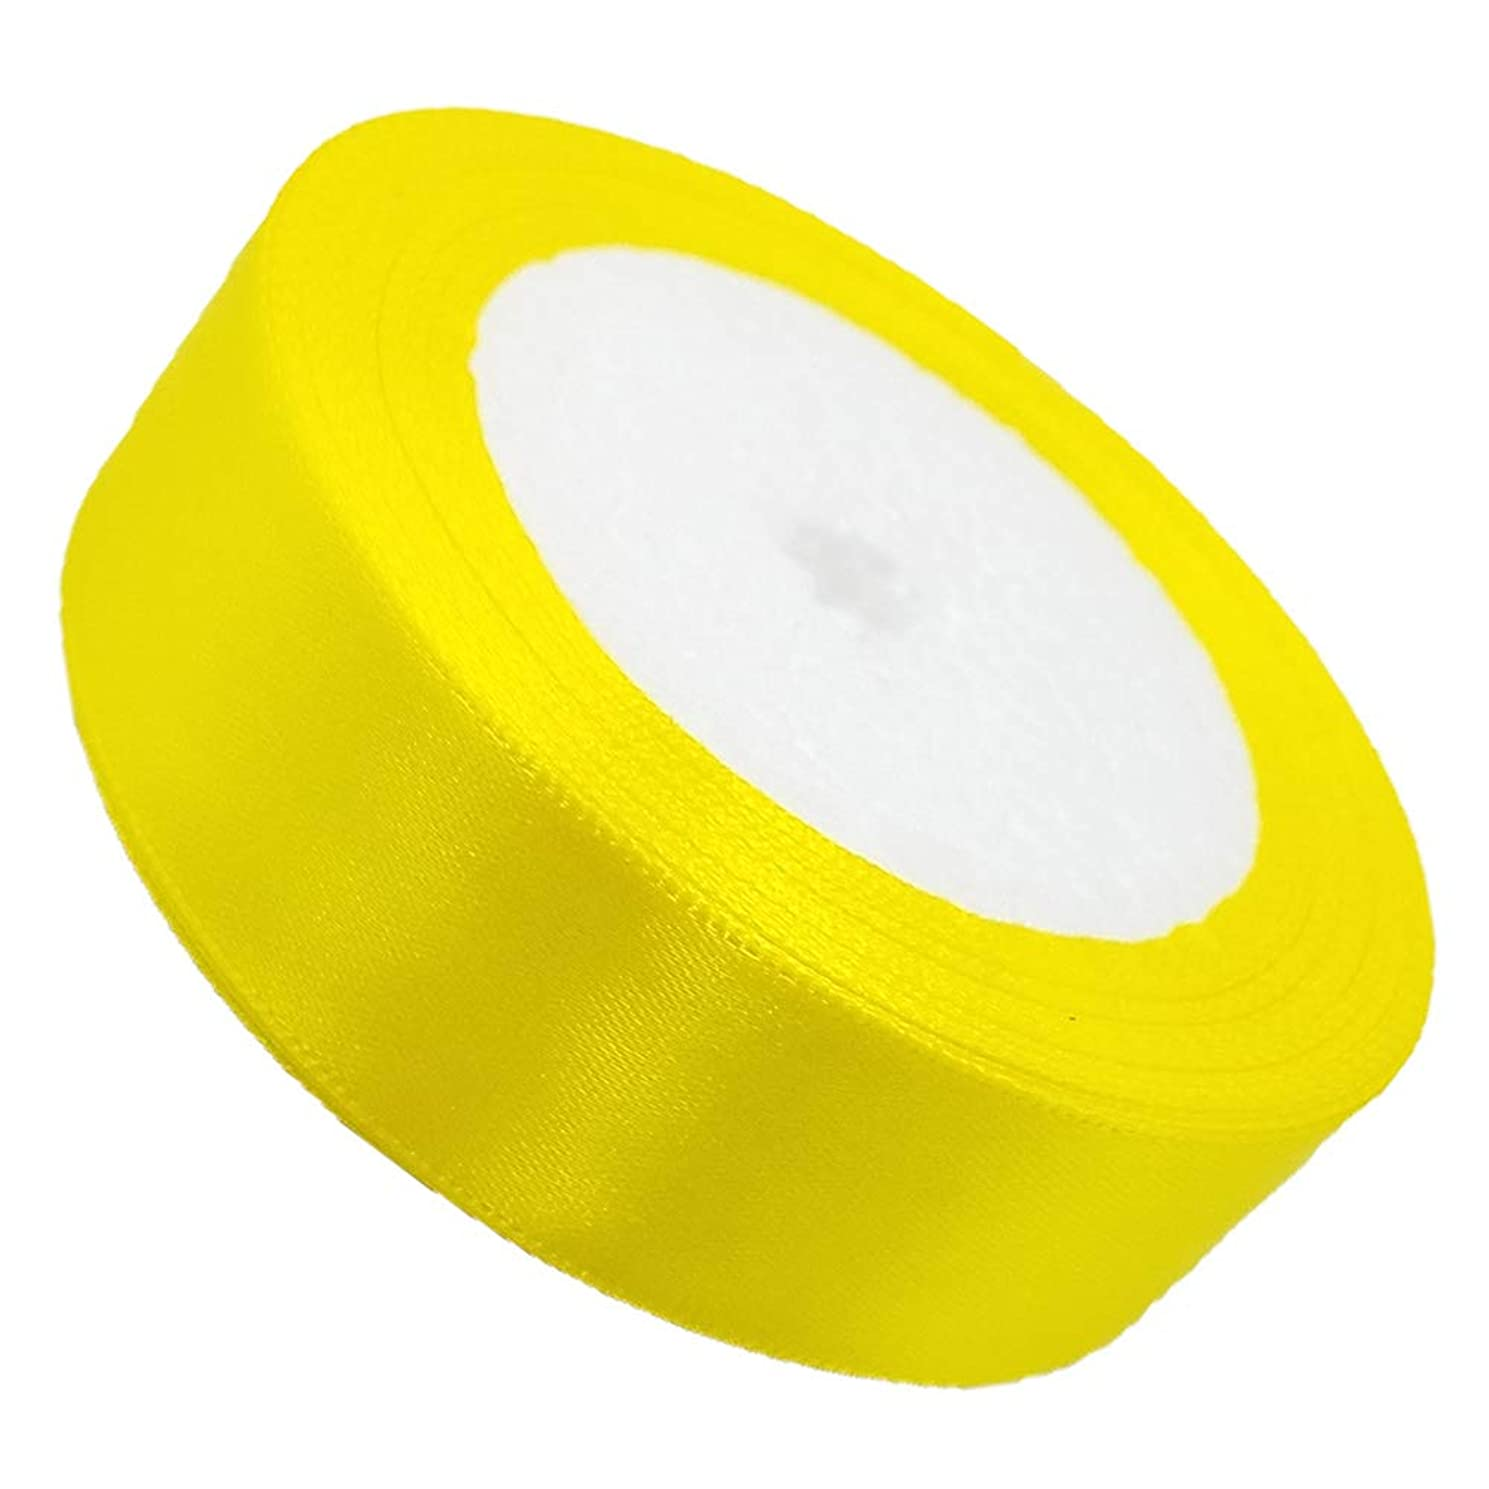 Tianying Solid Satin Ribbon Roll Farbic Double Face for Gift Wrapping Partty Wedding (Yellow, Width 1